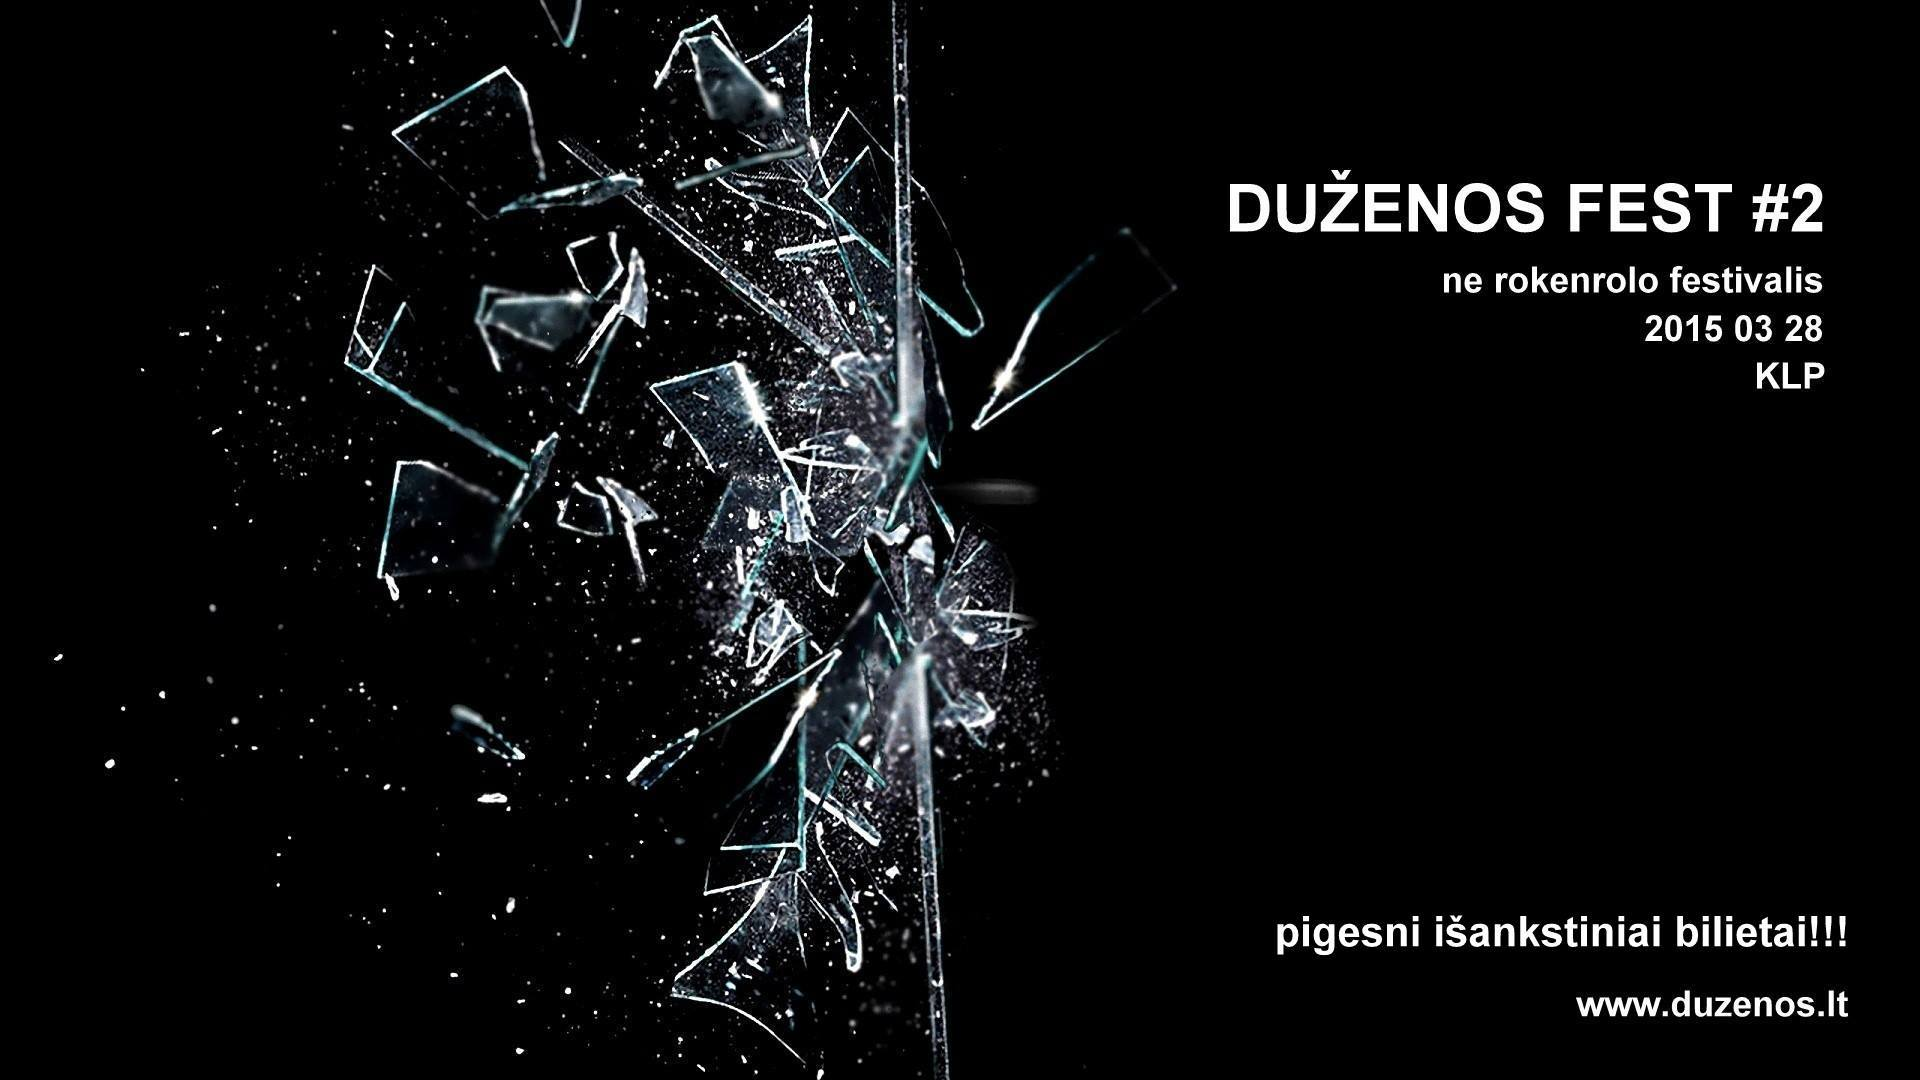 duzenos fest 2 broken glass 2